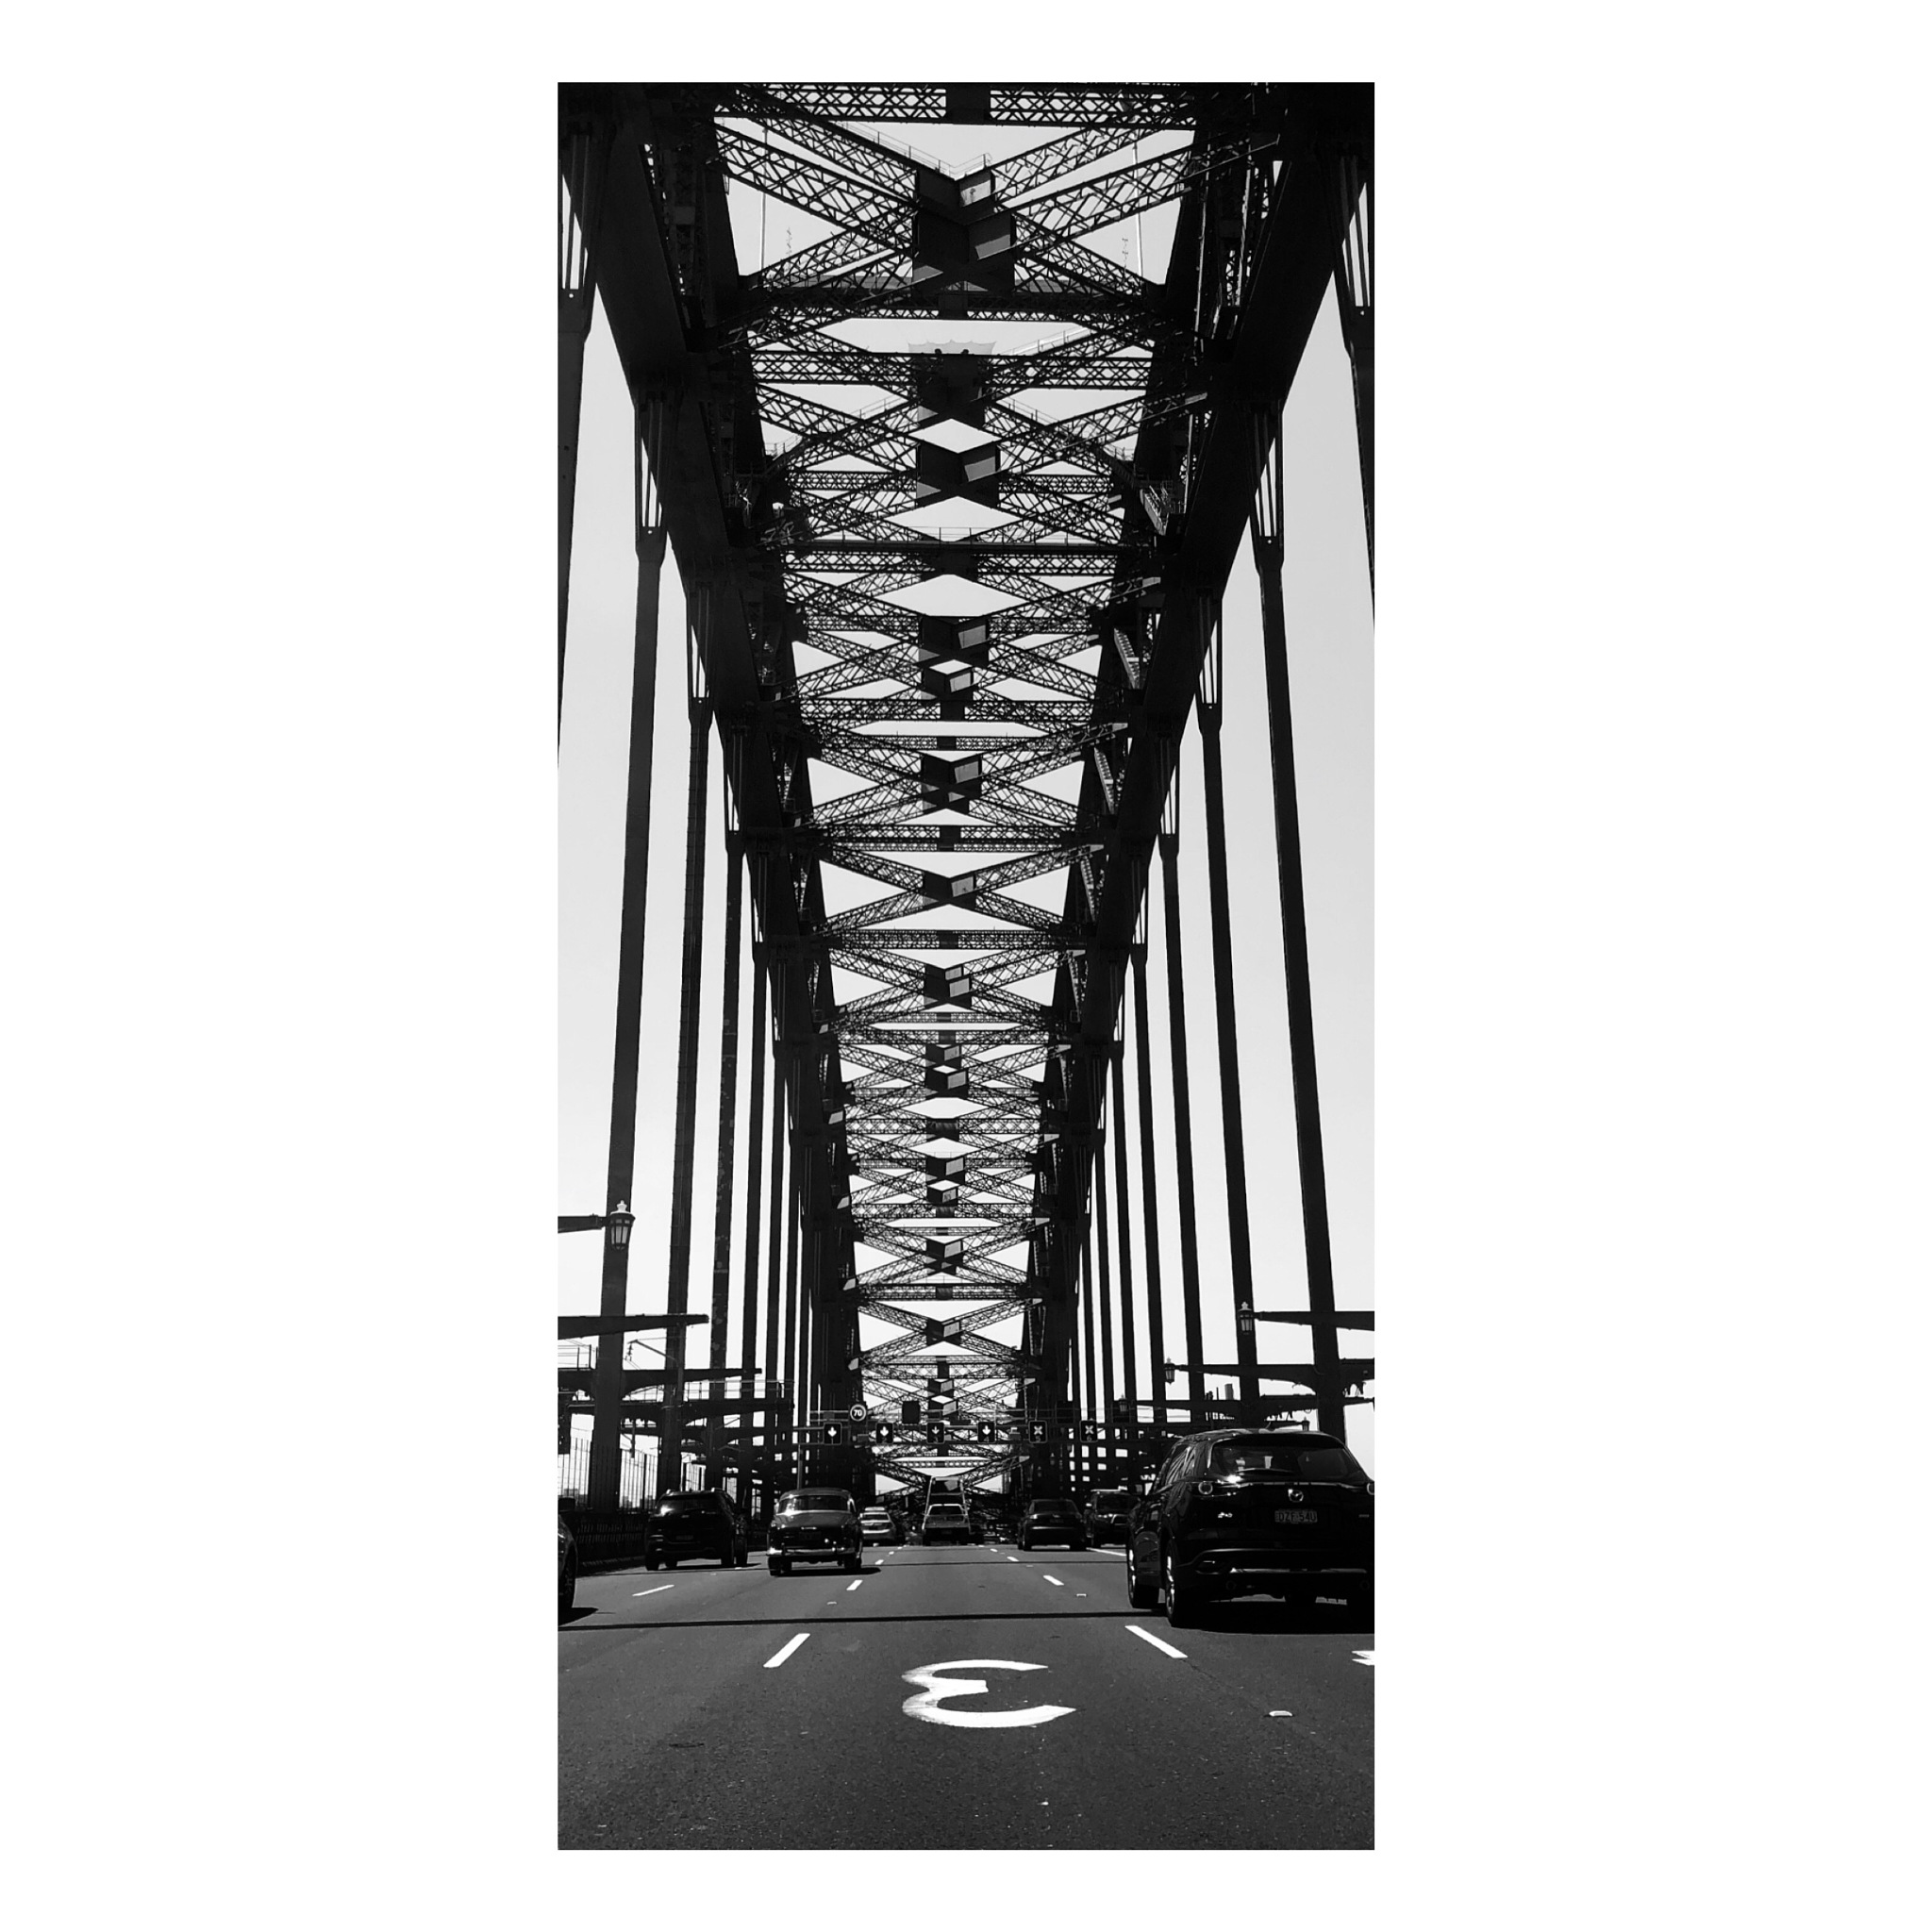 The iron bridge by the_shutter_donut